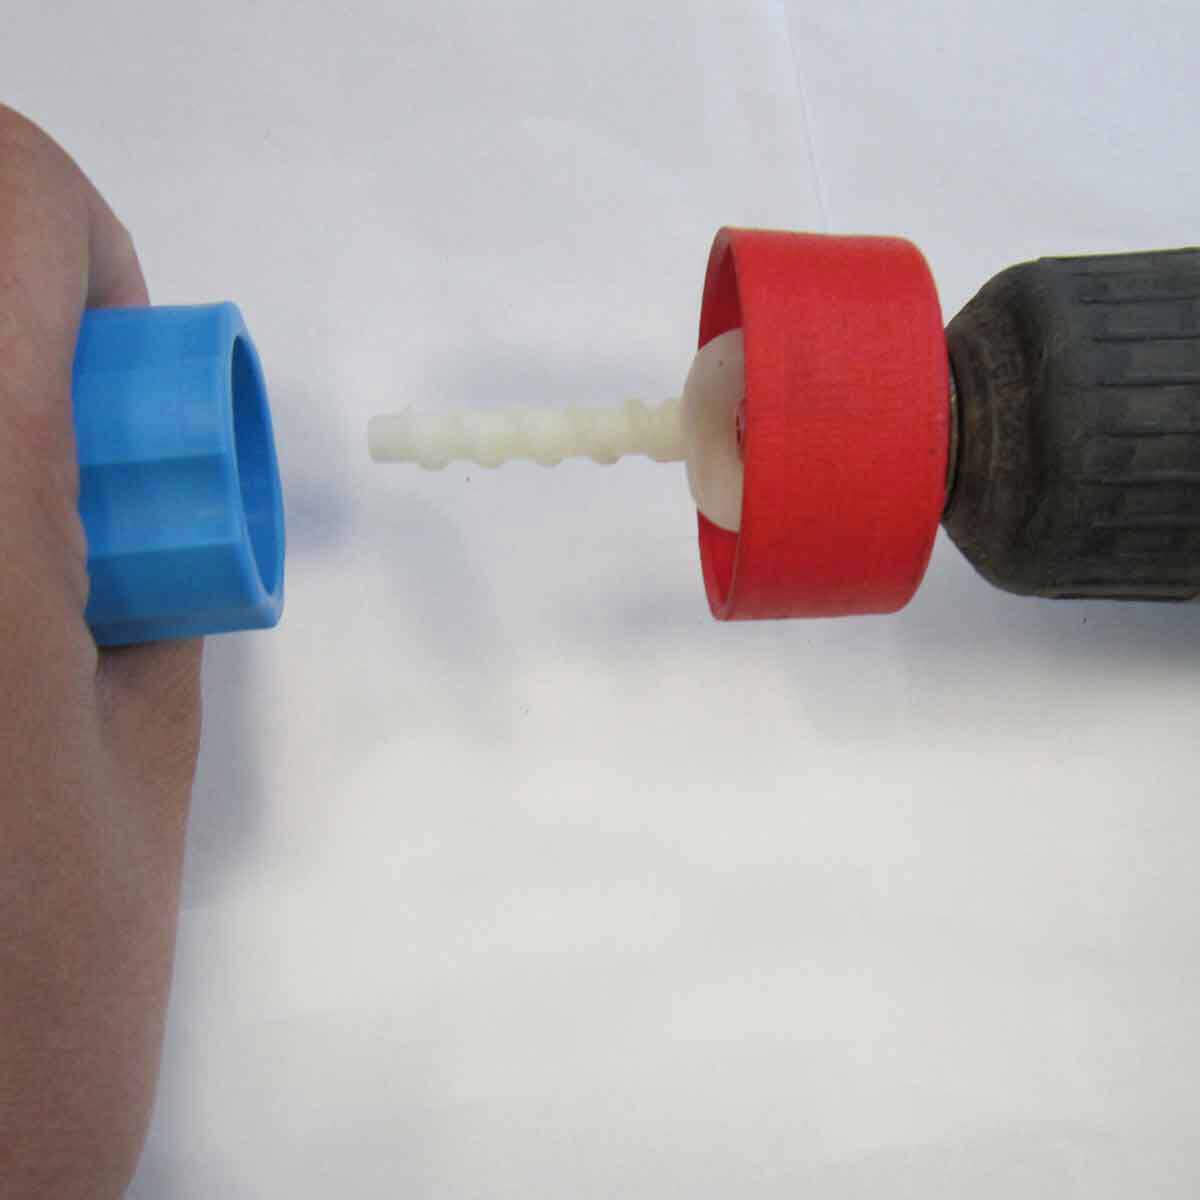 Attach the cap to the threaded stem by rotating it clockwise. Level the joint by rotating the cap using the minimum amount of pressure needed